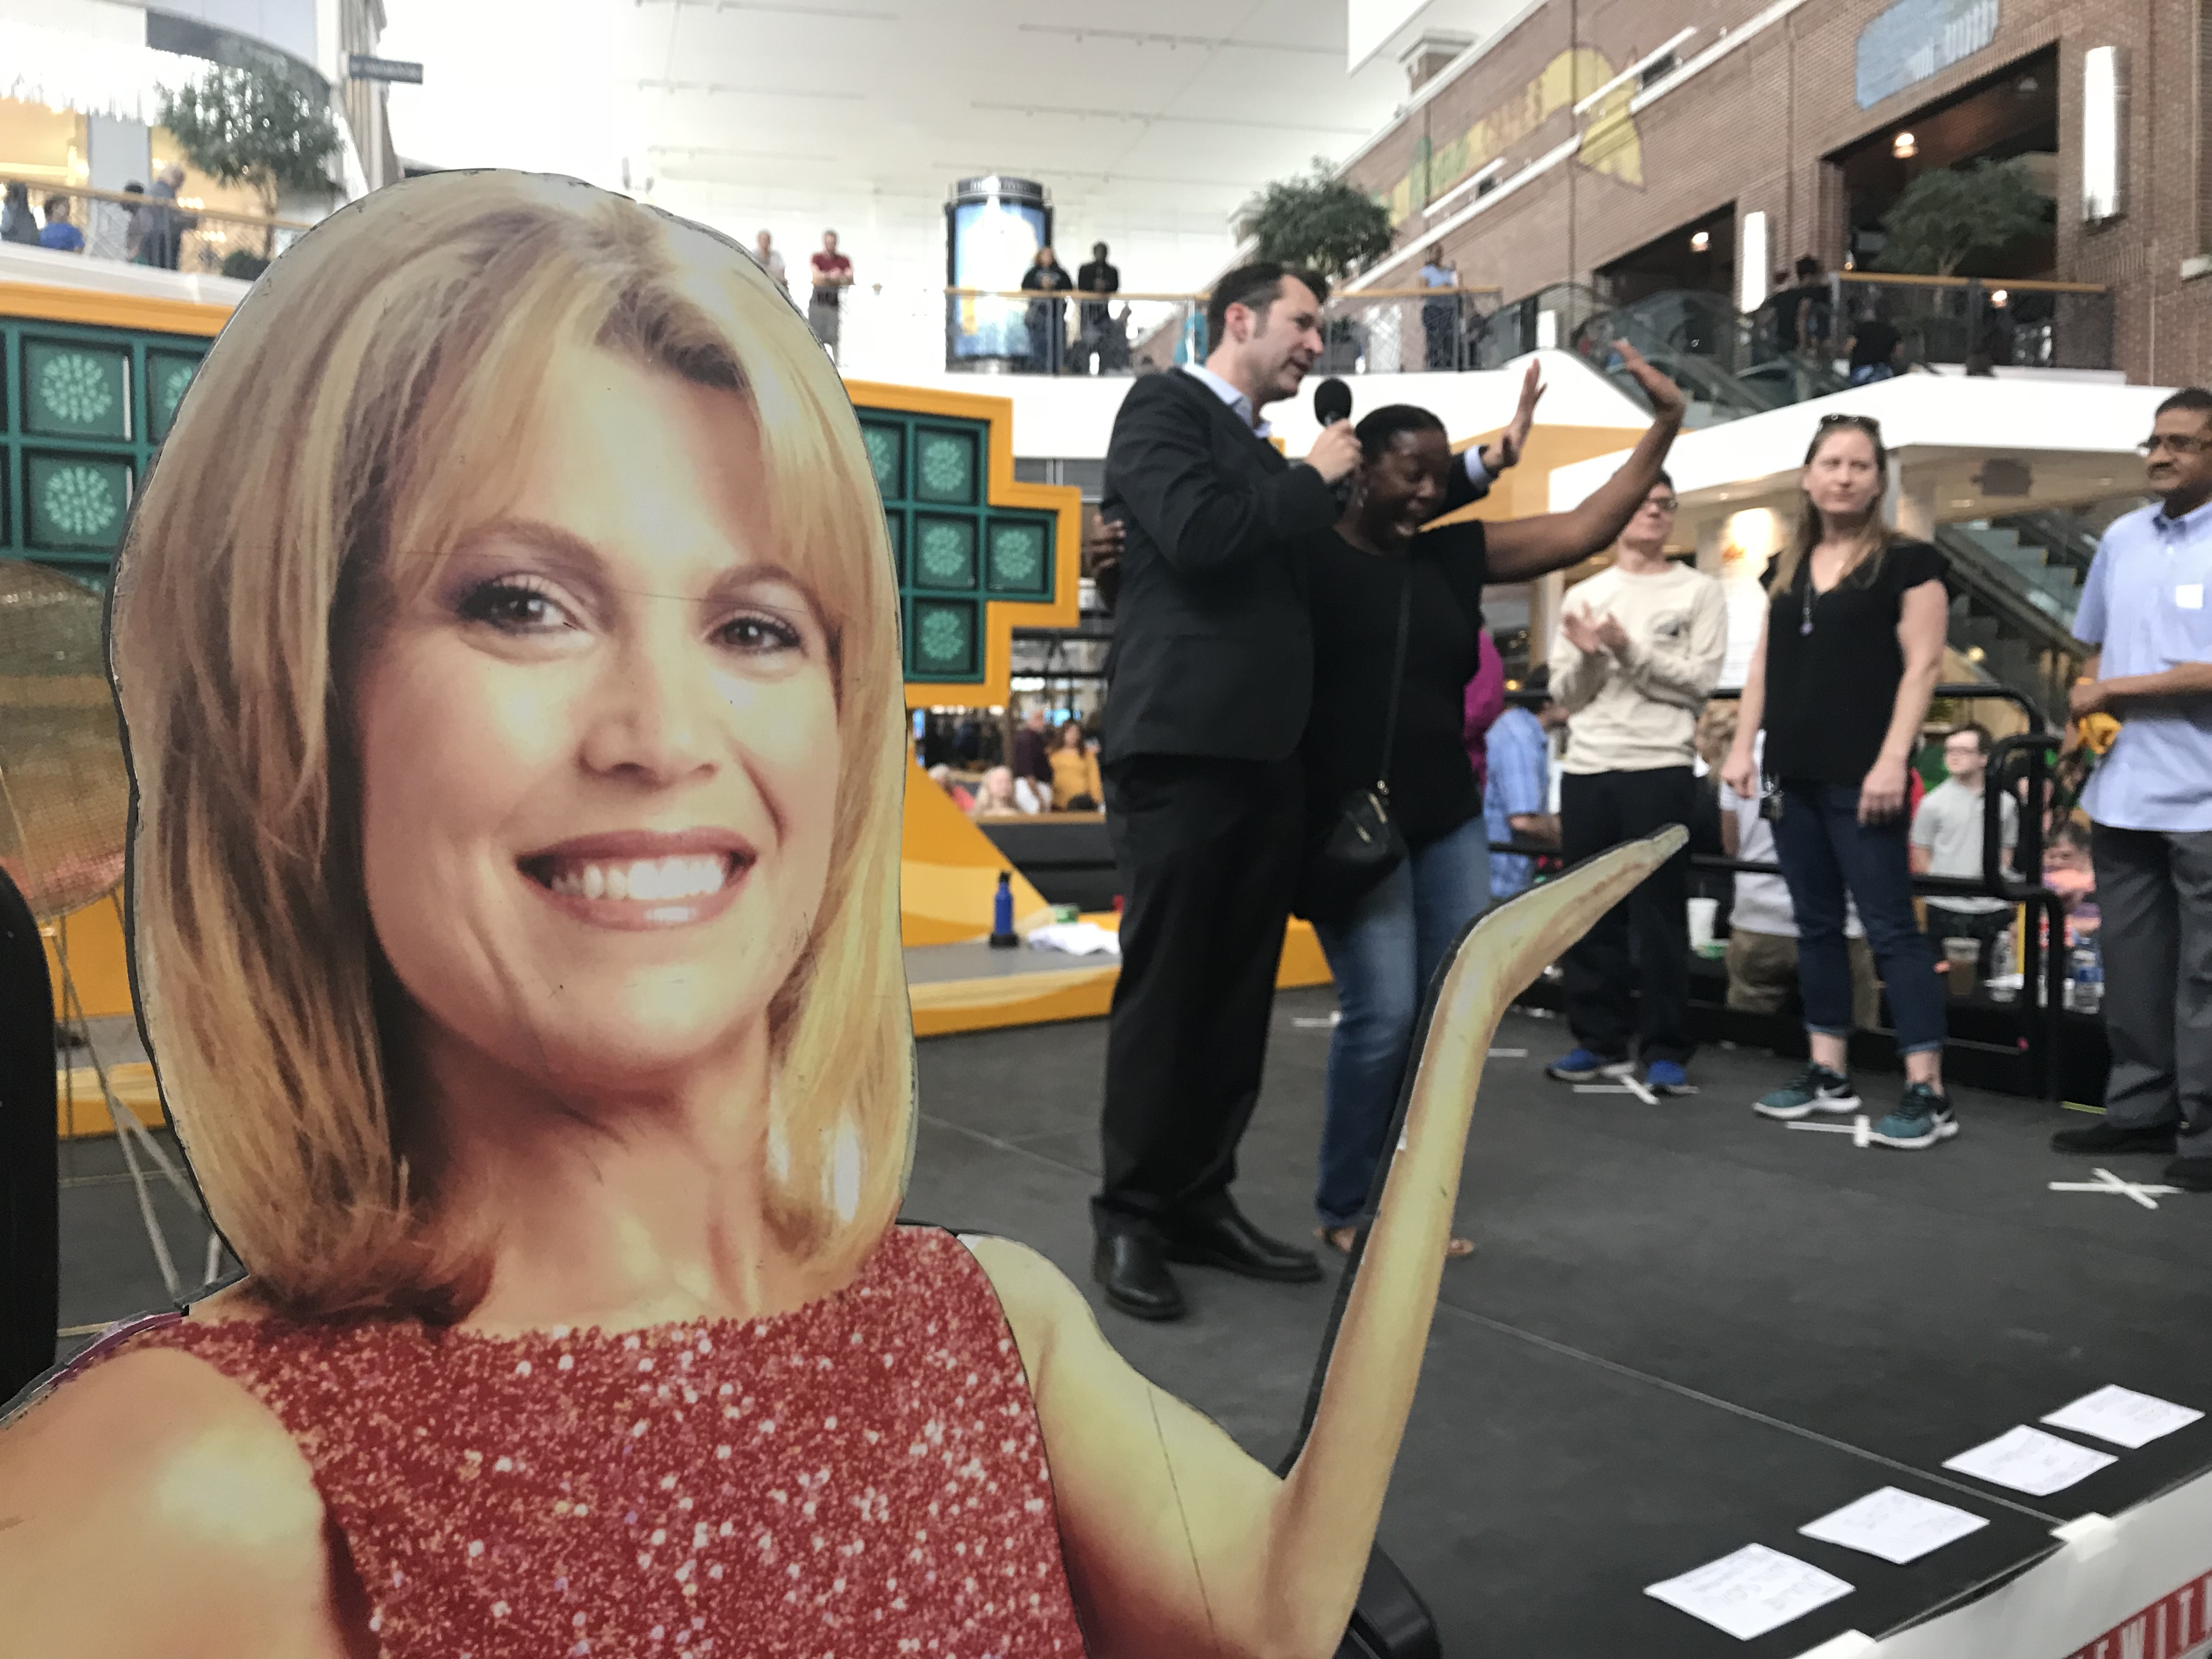 <div class='meta'><div class='origin-logo' data-origin='WTVD'></div><span class='caption-text' data-credit='Julie Wilson'>Wheel of Fortune at The Streets at Southpoint in Durham Sunday</span></div>